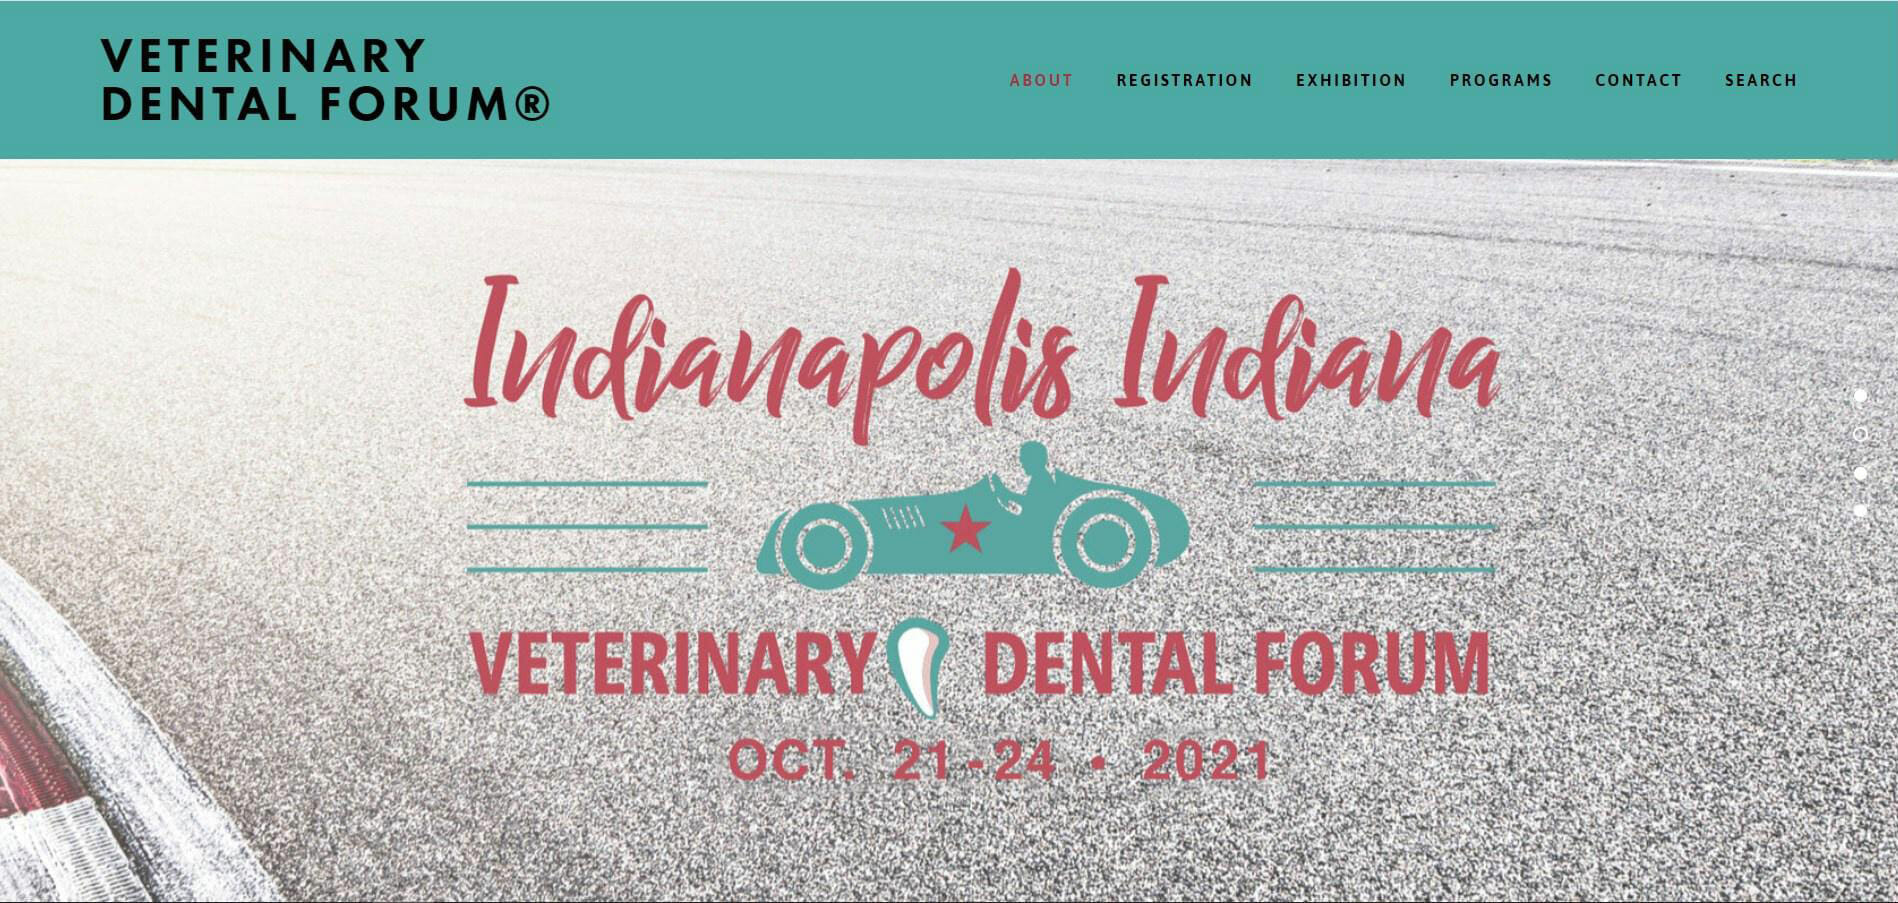 vet dental forum